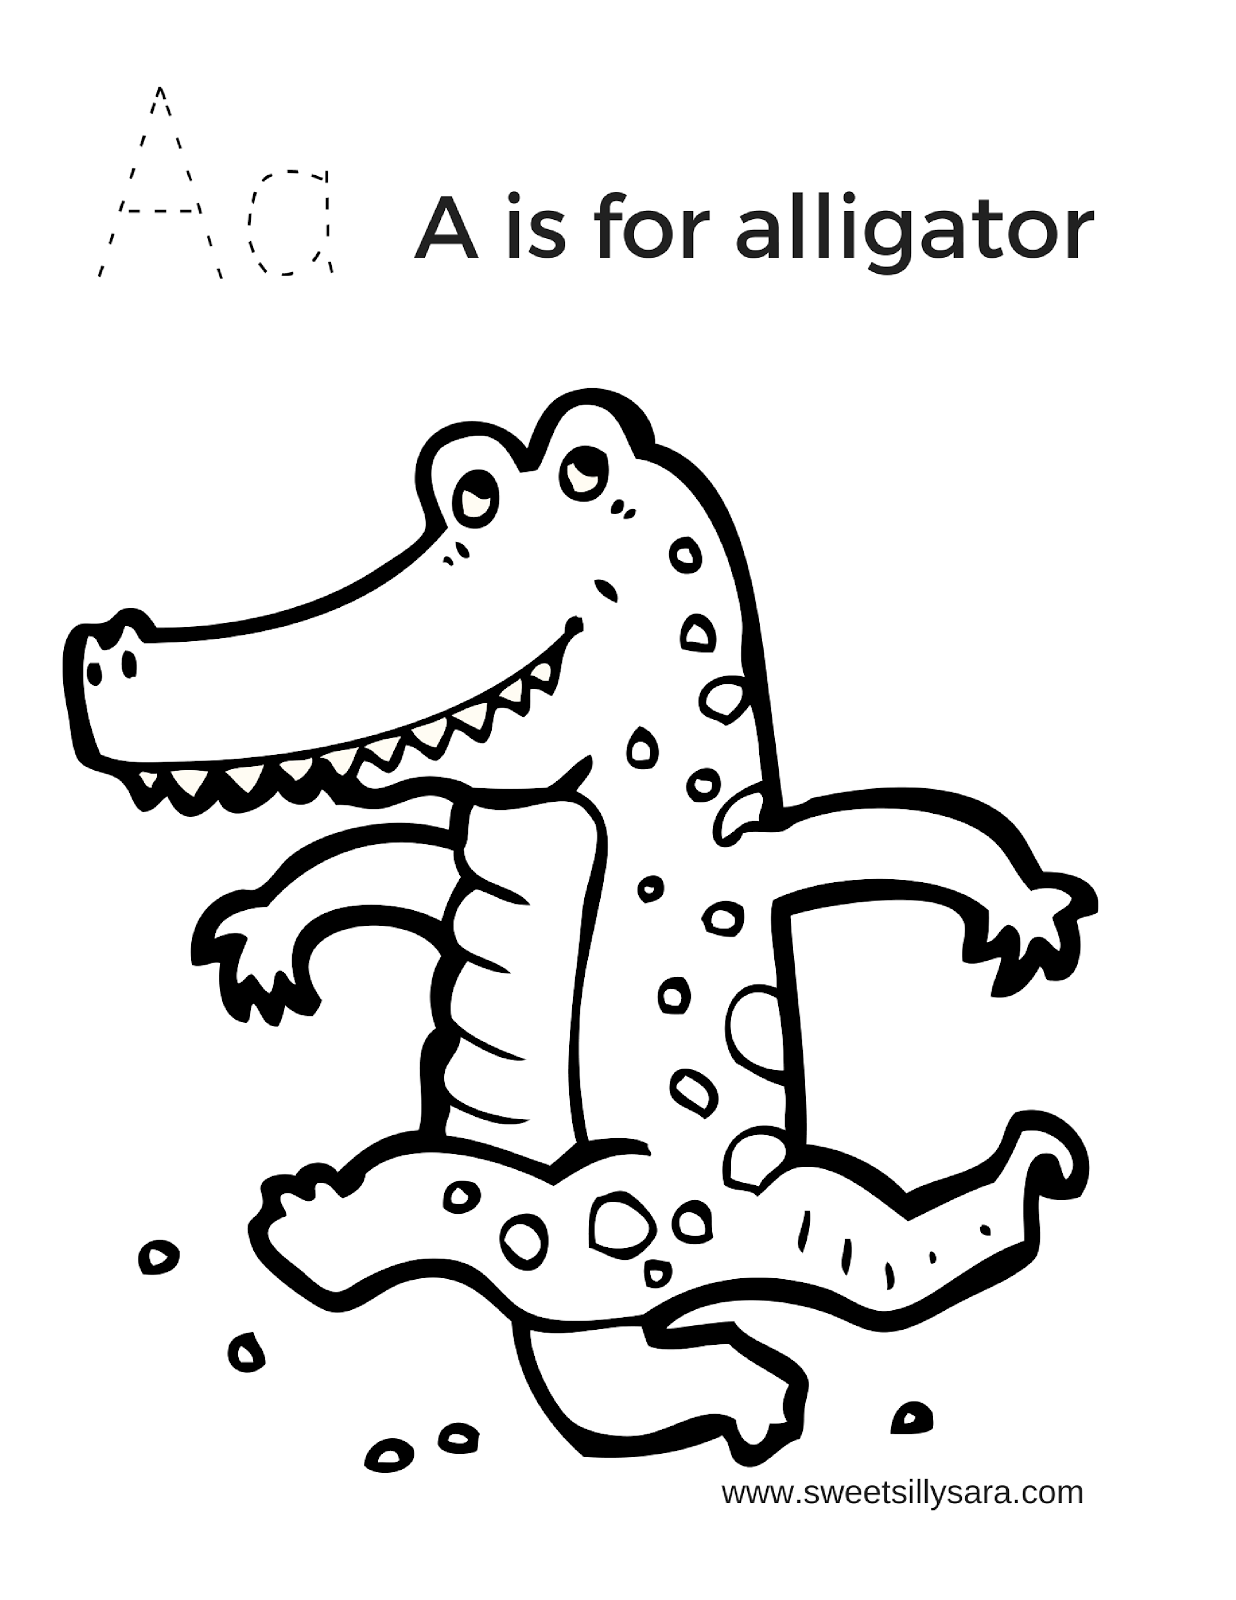 Sweet Silly Sara: A is for Alligator Coloring Page